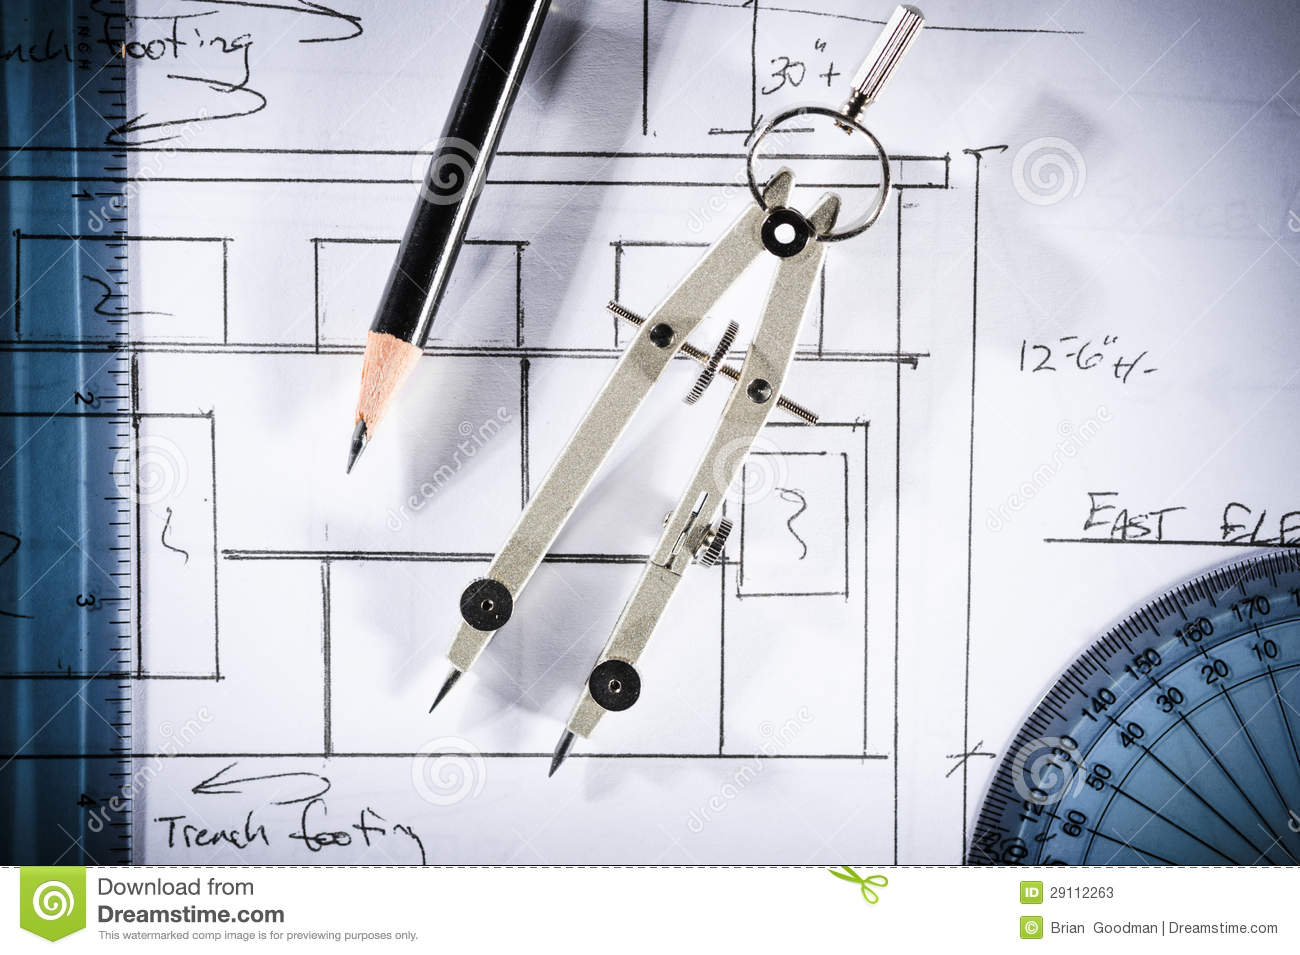 drawing instruments The mechanical drawing tools clipart gallery offers 107 illustrations of tools commonly used in mechanical drawing such as dividers, drawing boards, pencils , scales, triangles and t-squares scales are made with different divisions for different purposes for machine, structural and architectural.